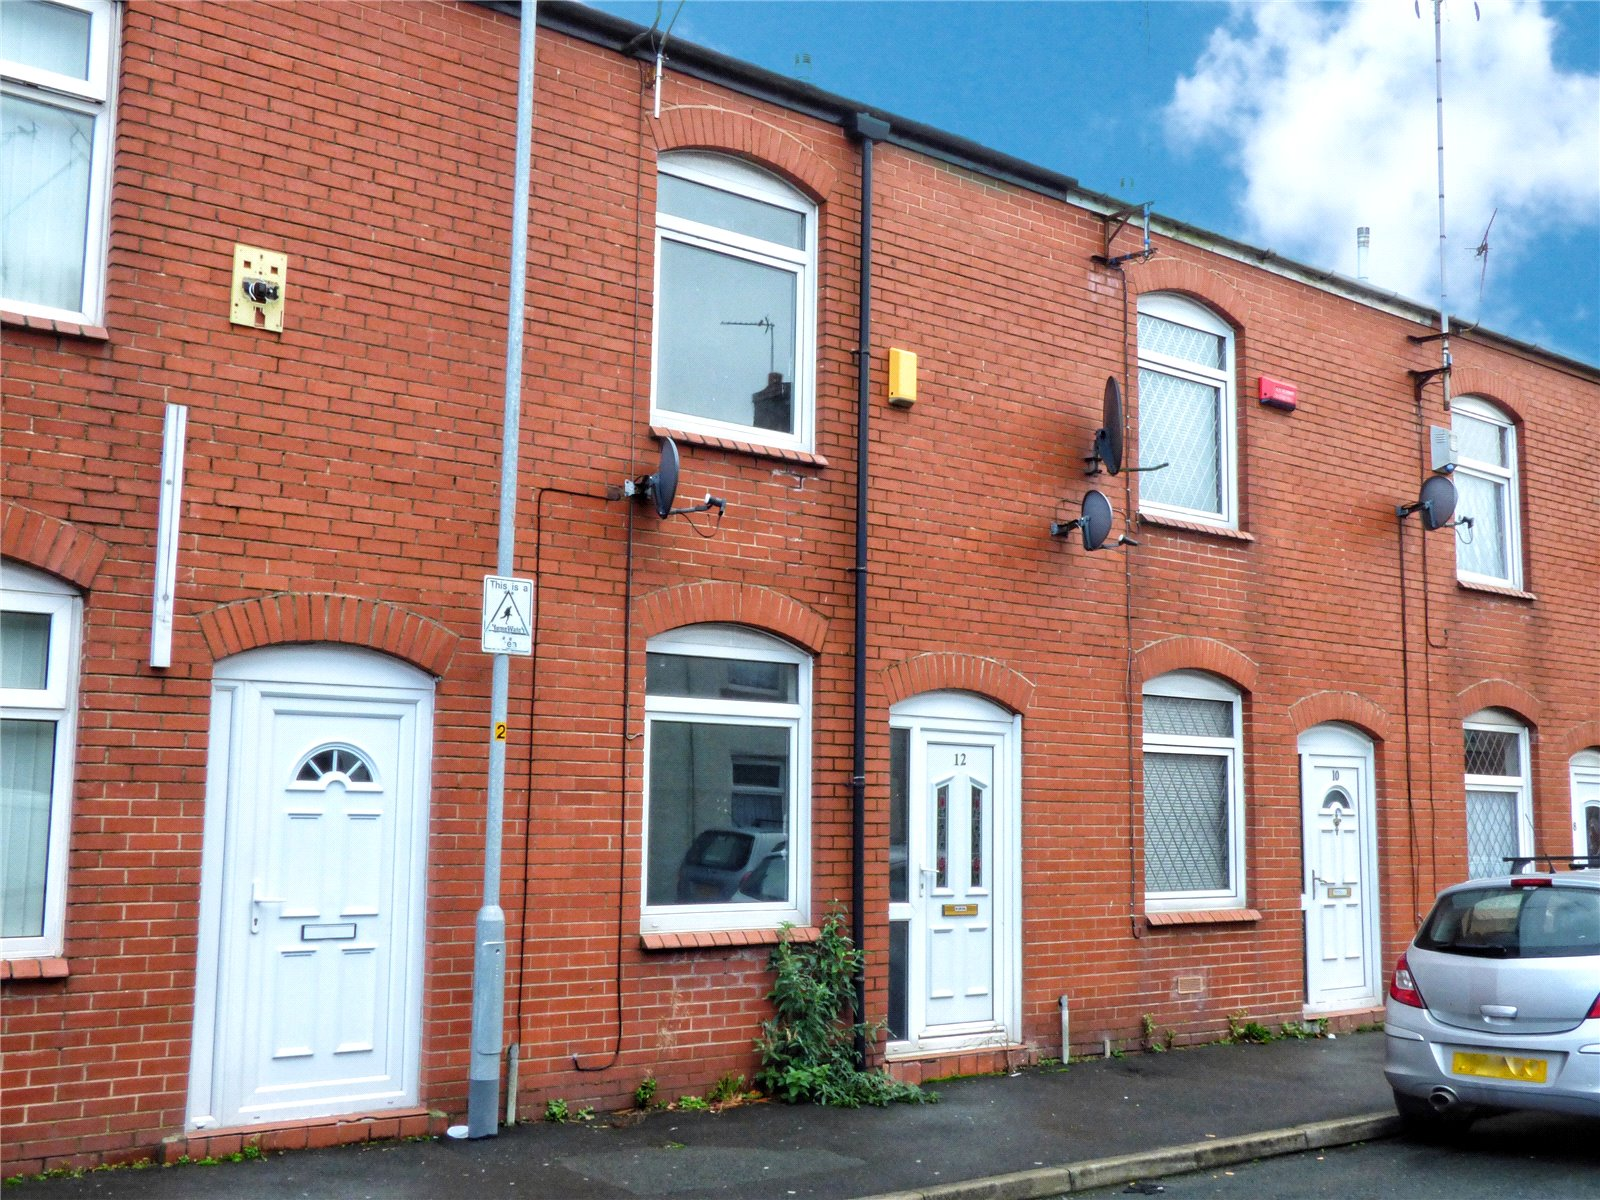 2 Bedrooms Terraced House for sale in Shaw Street, Rochdale, Greater Manchester, OL12